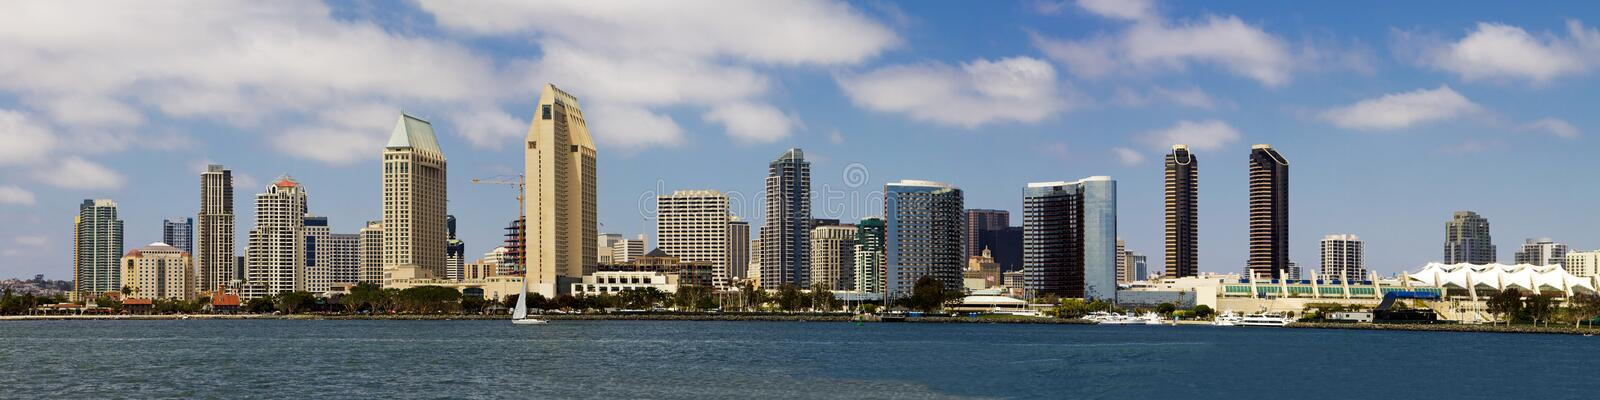 Download Downtown San Diego Seaside Cityscape Panorama Stock Image - Image: 20024651